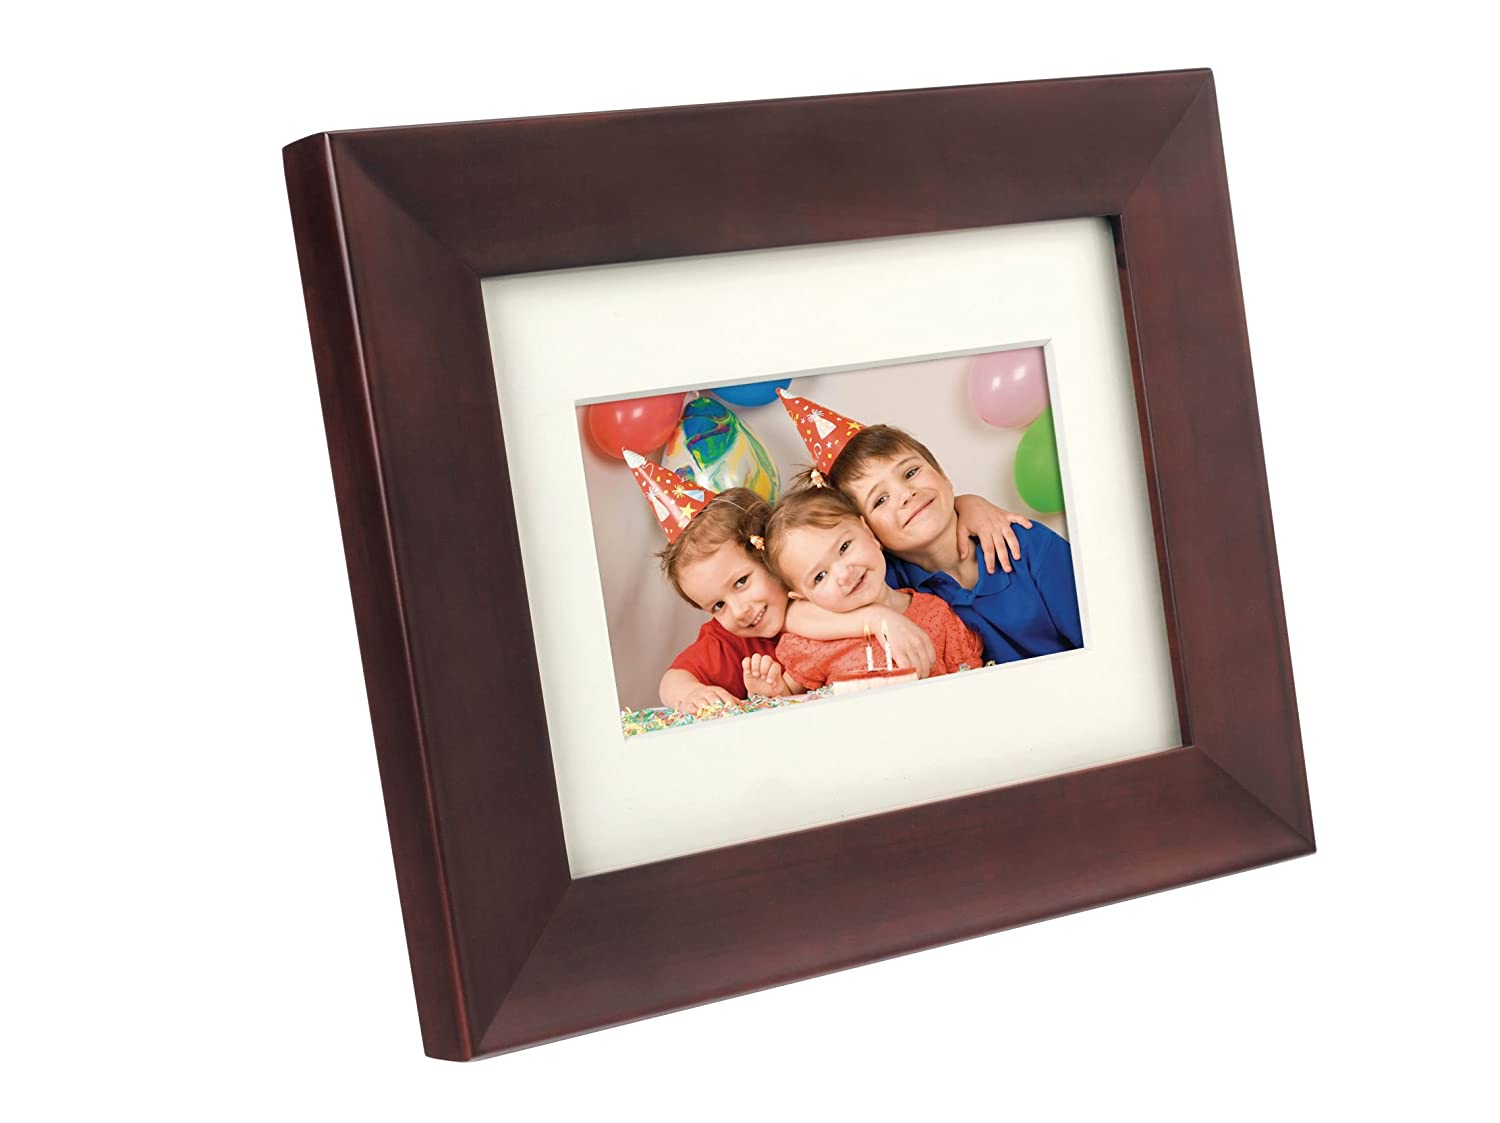 Phillips SPF3470 7- Inch Digital Picture Frame